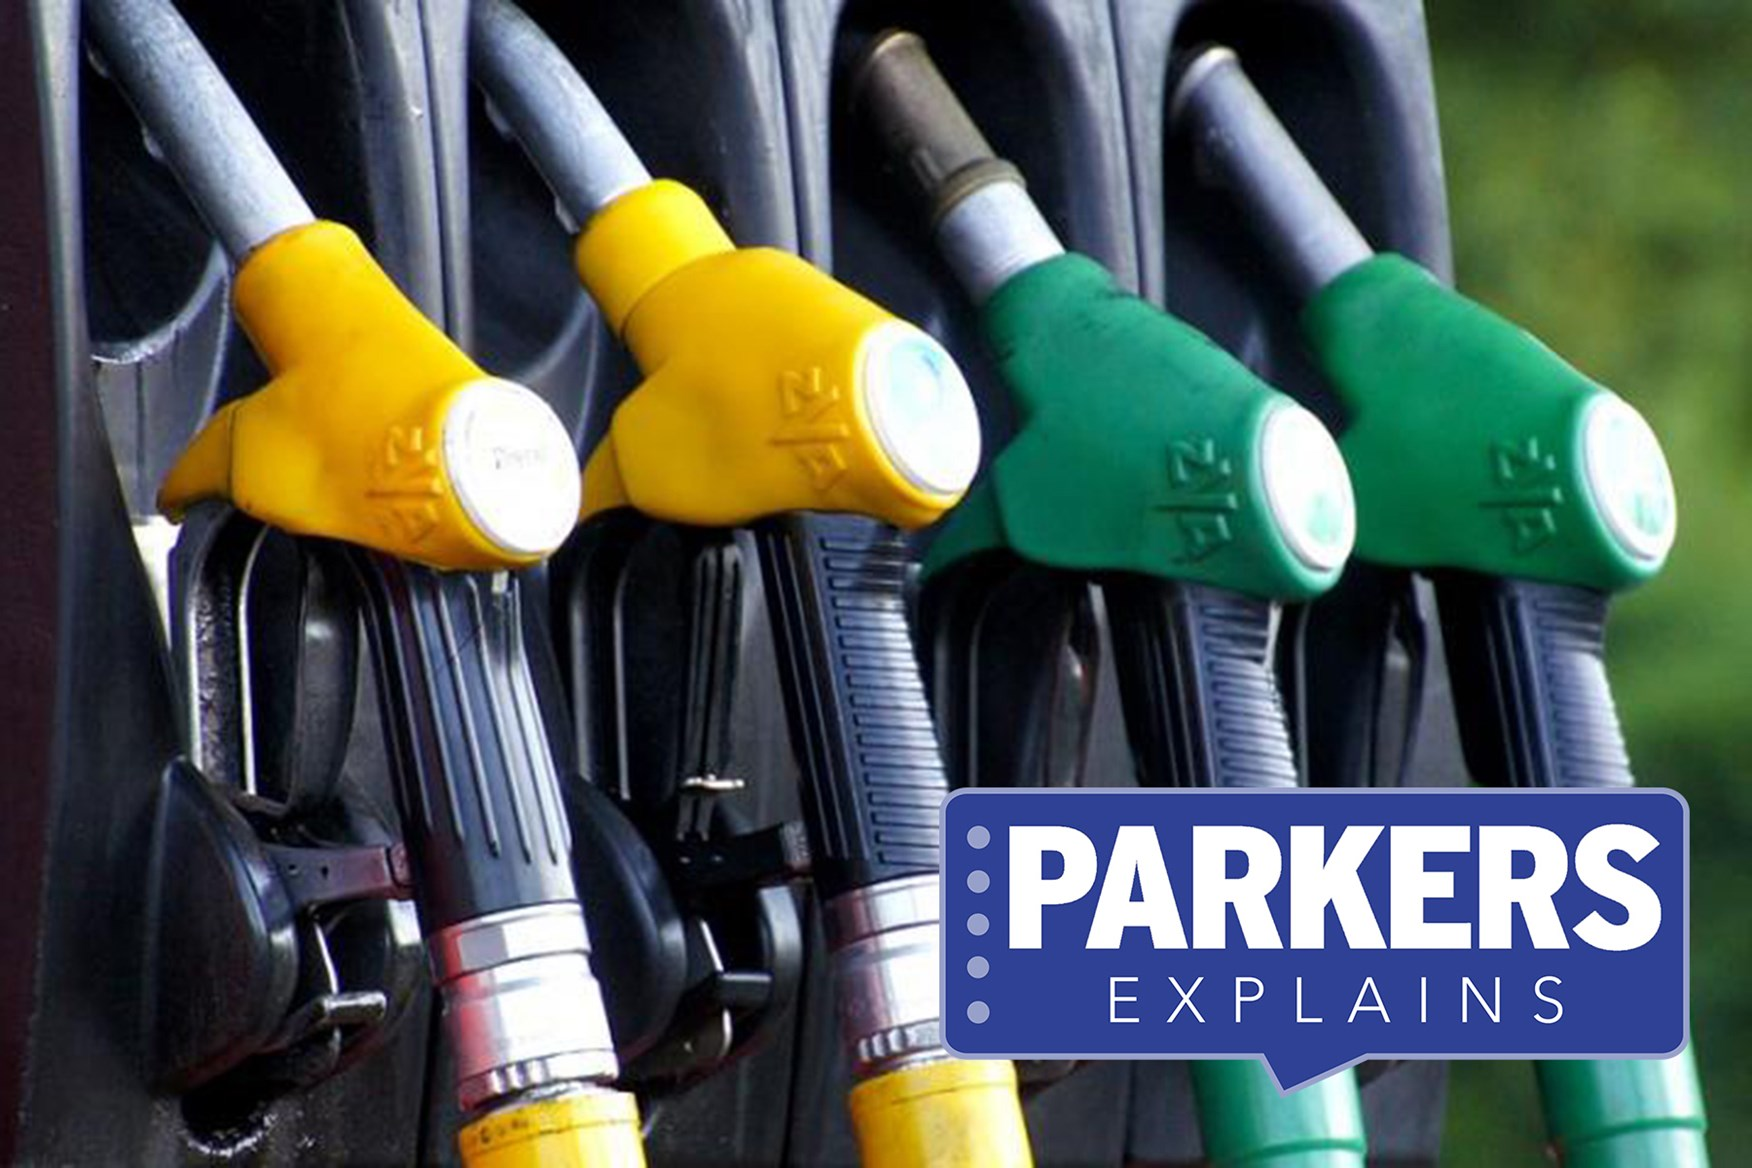 Petrol vs diesel - which is best for me? | Parkers